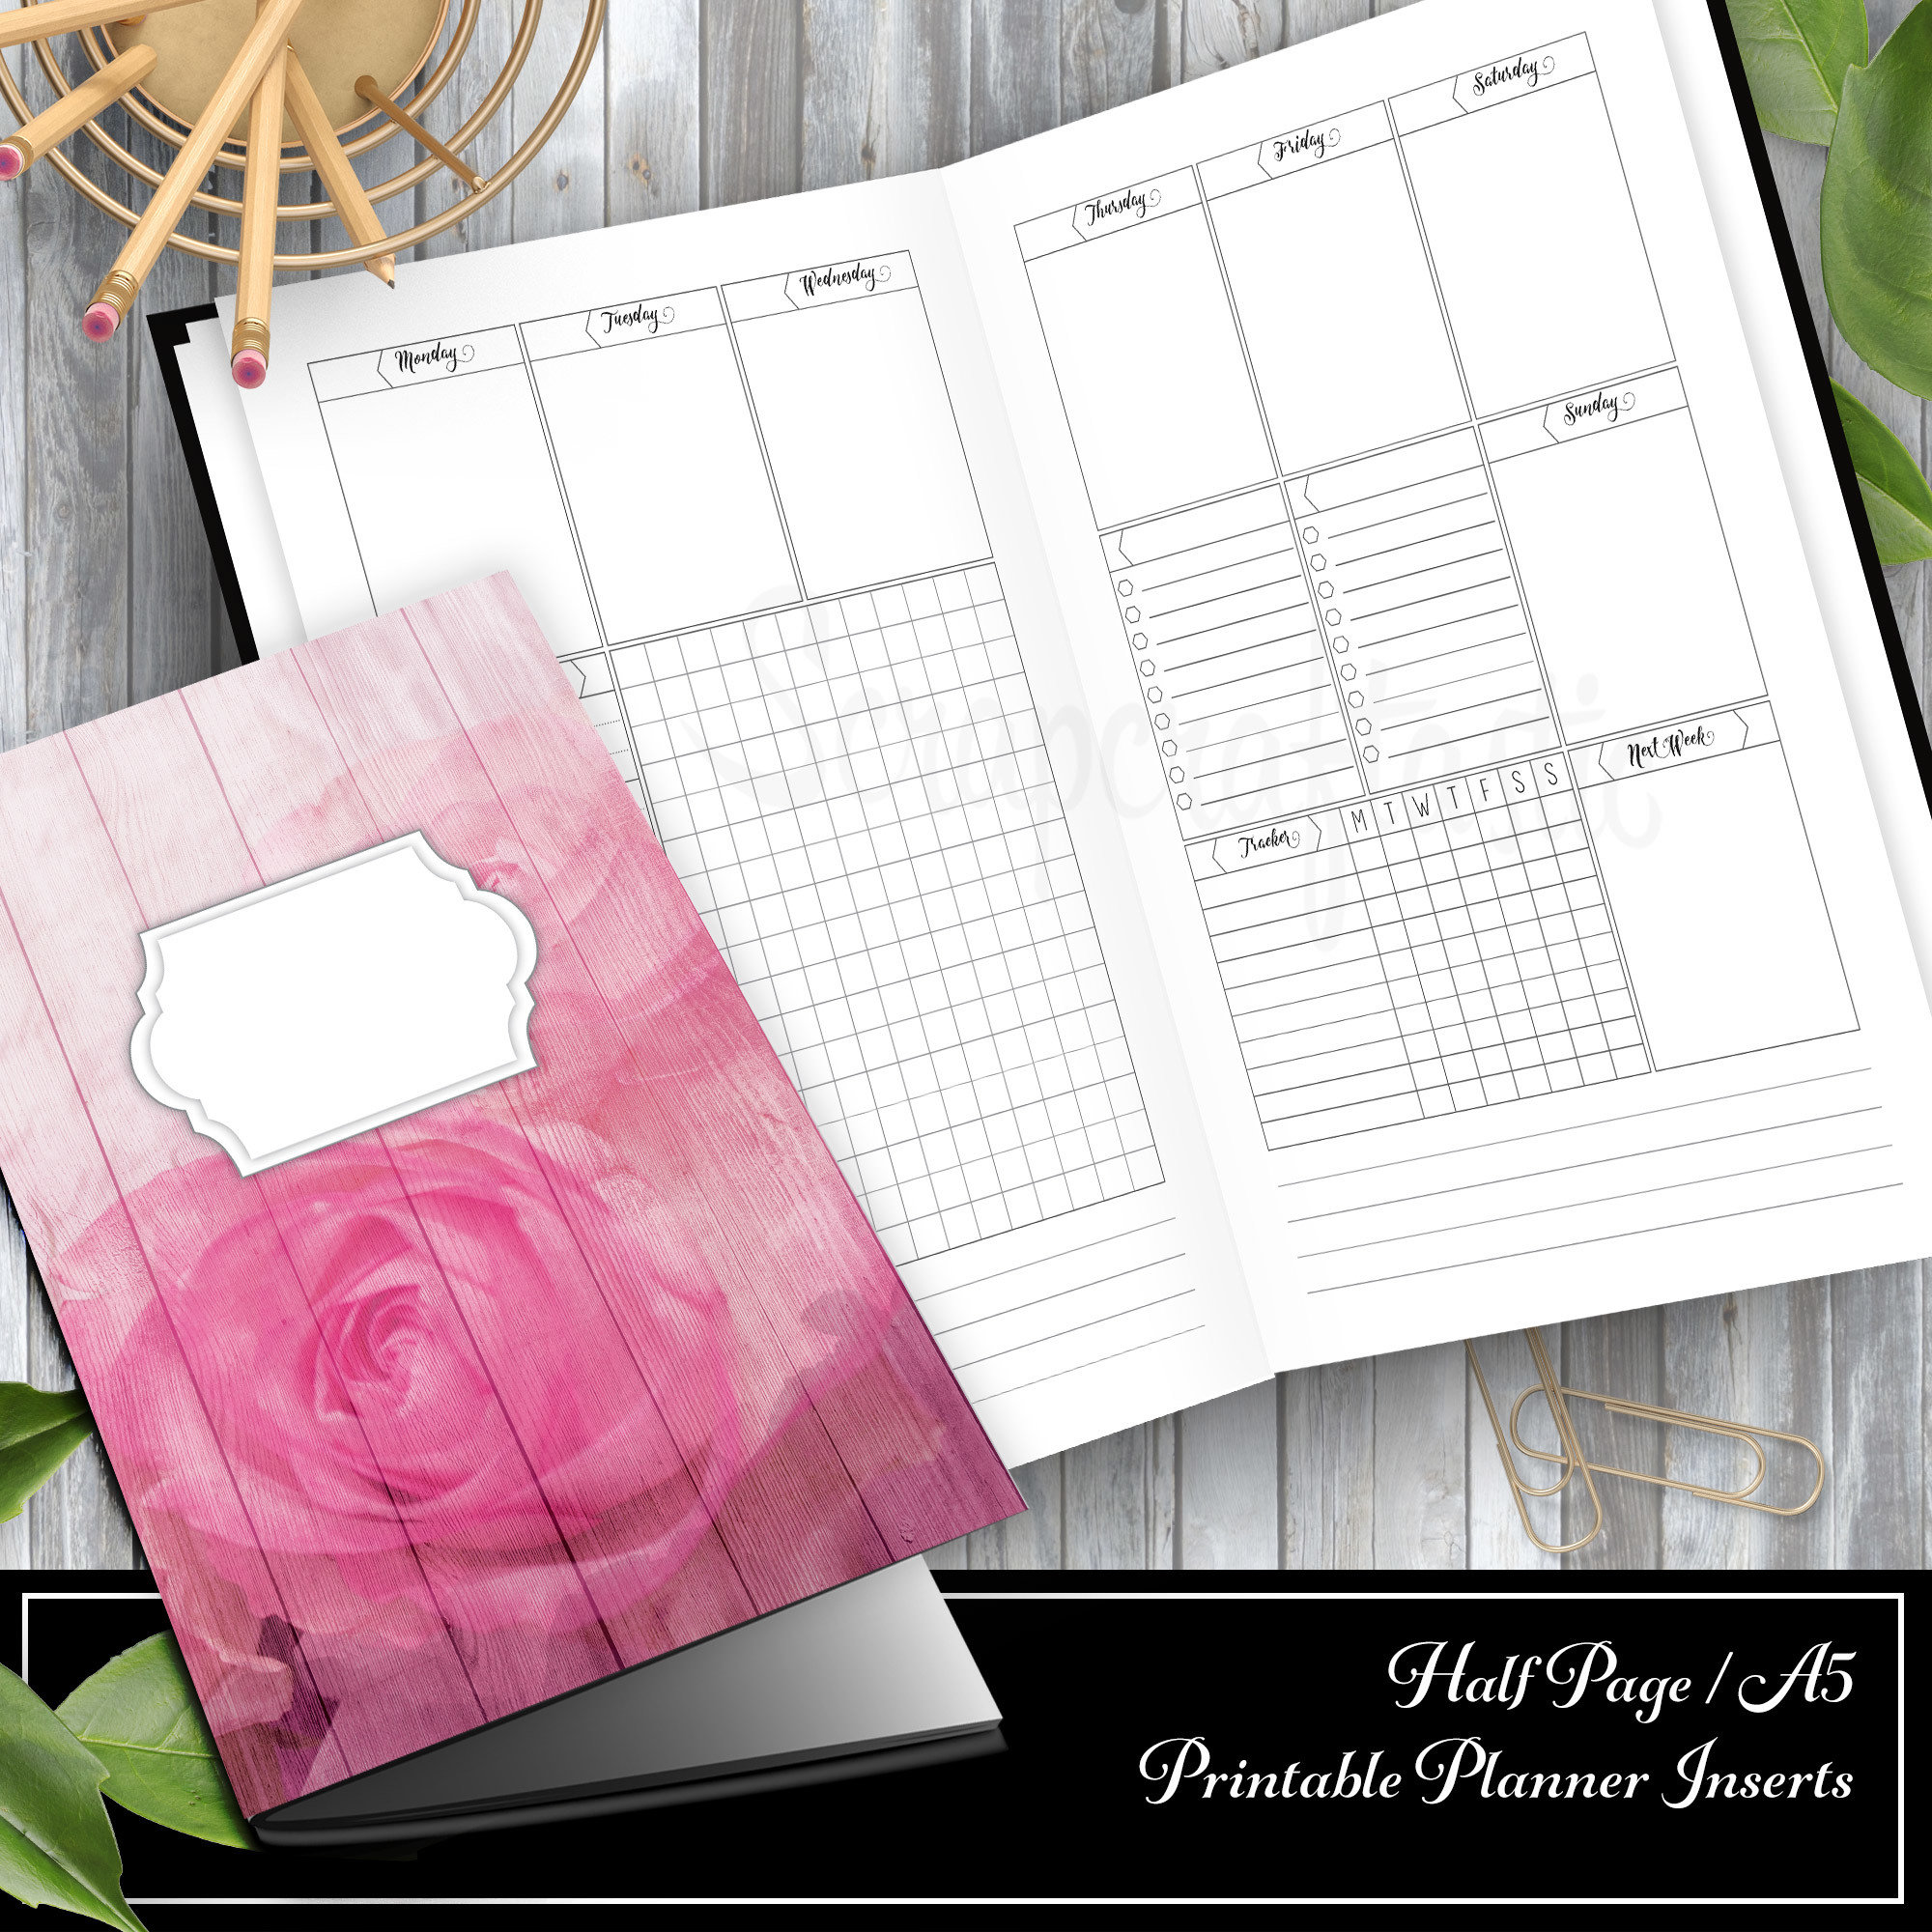 Deluxe {PRINTED} Week on Two Pages (WO2P) Half Page/A5 Traveler's Notebook Printable Inserts 00319P